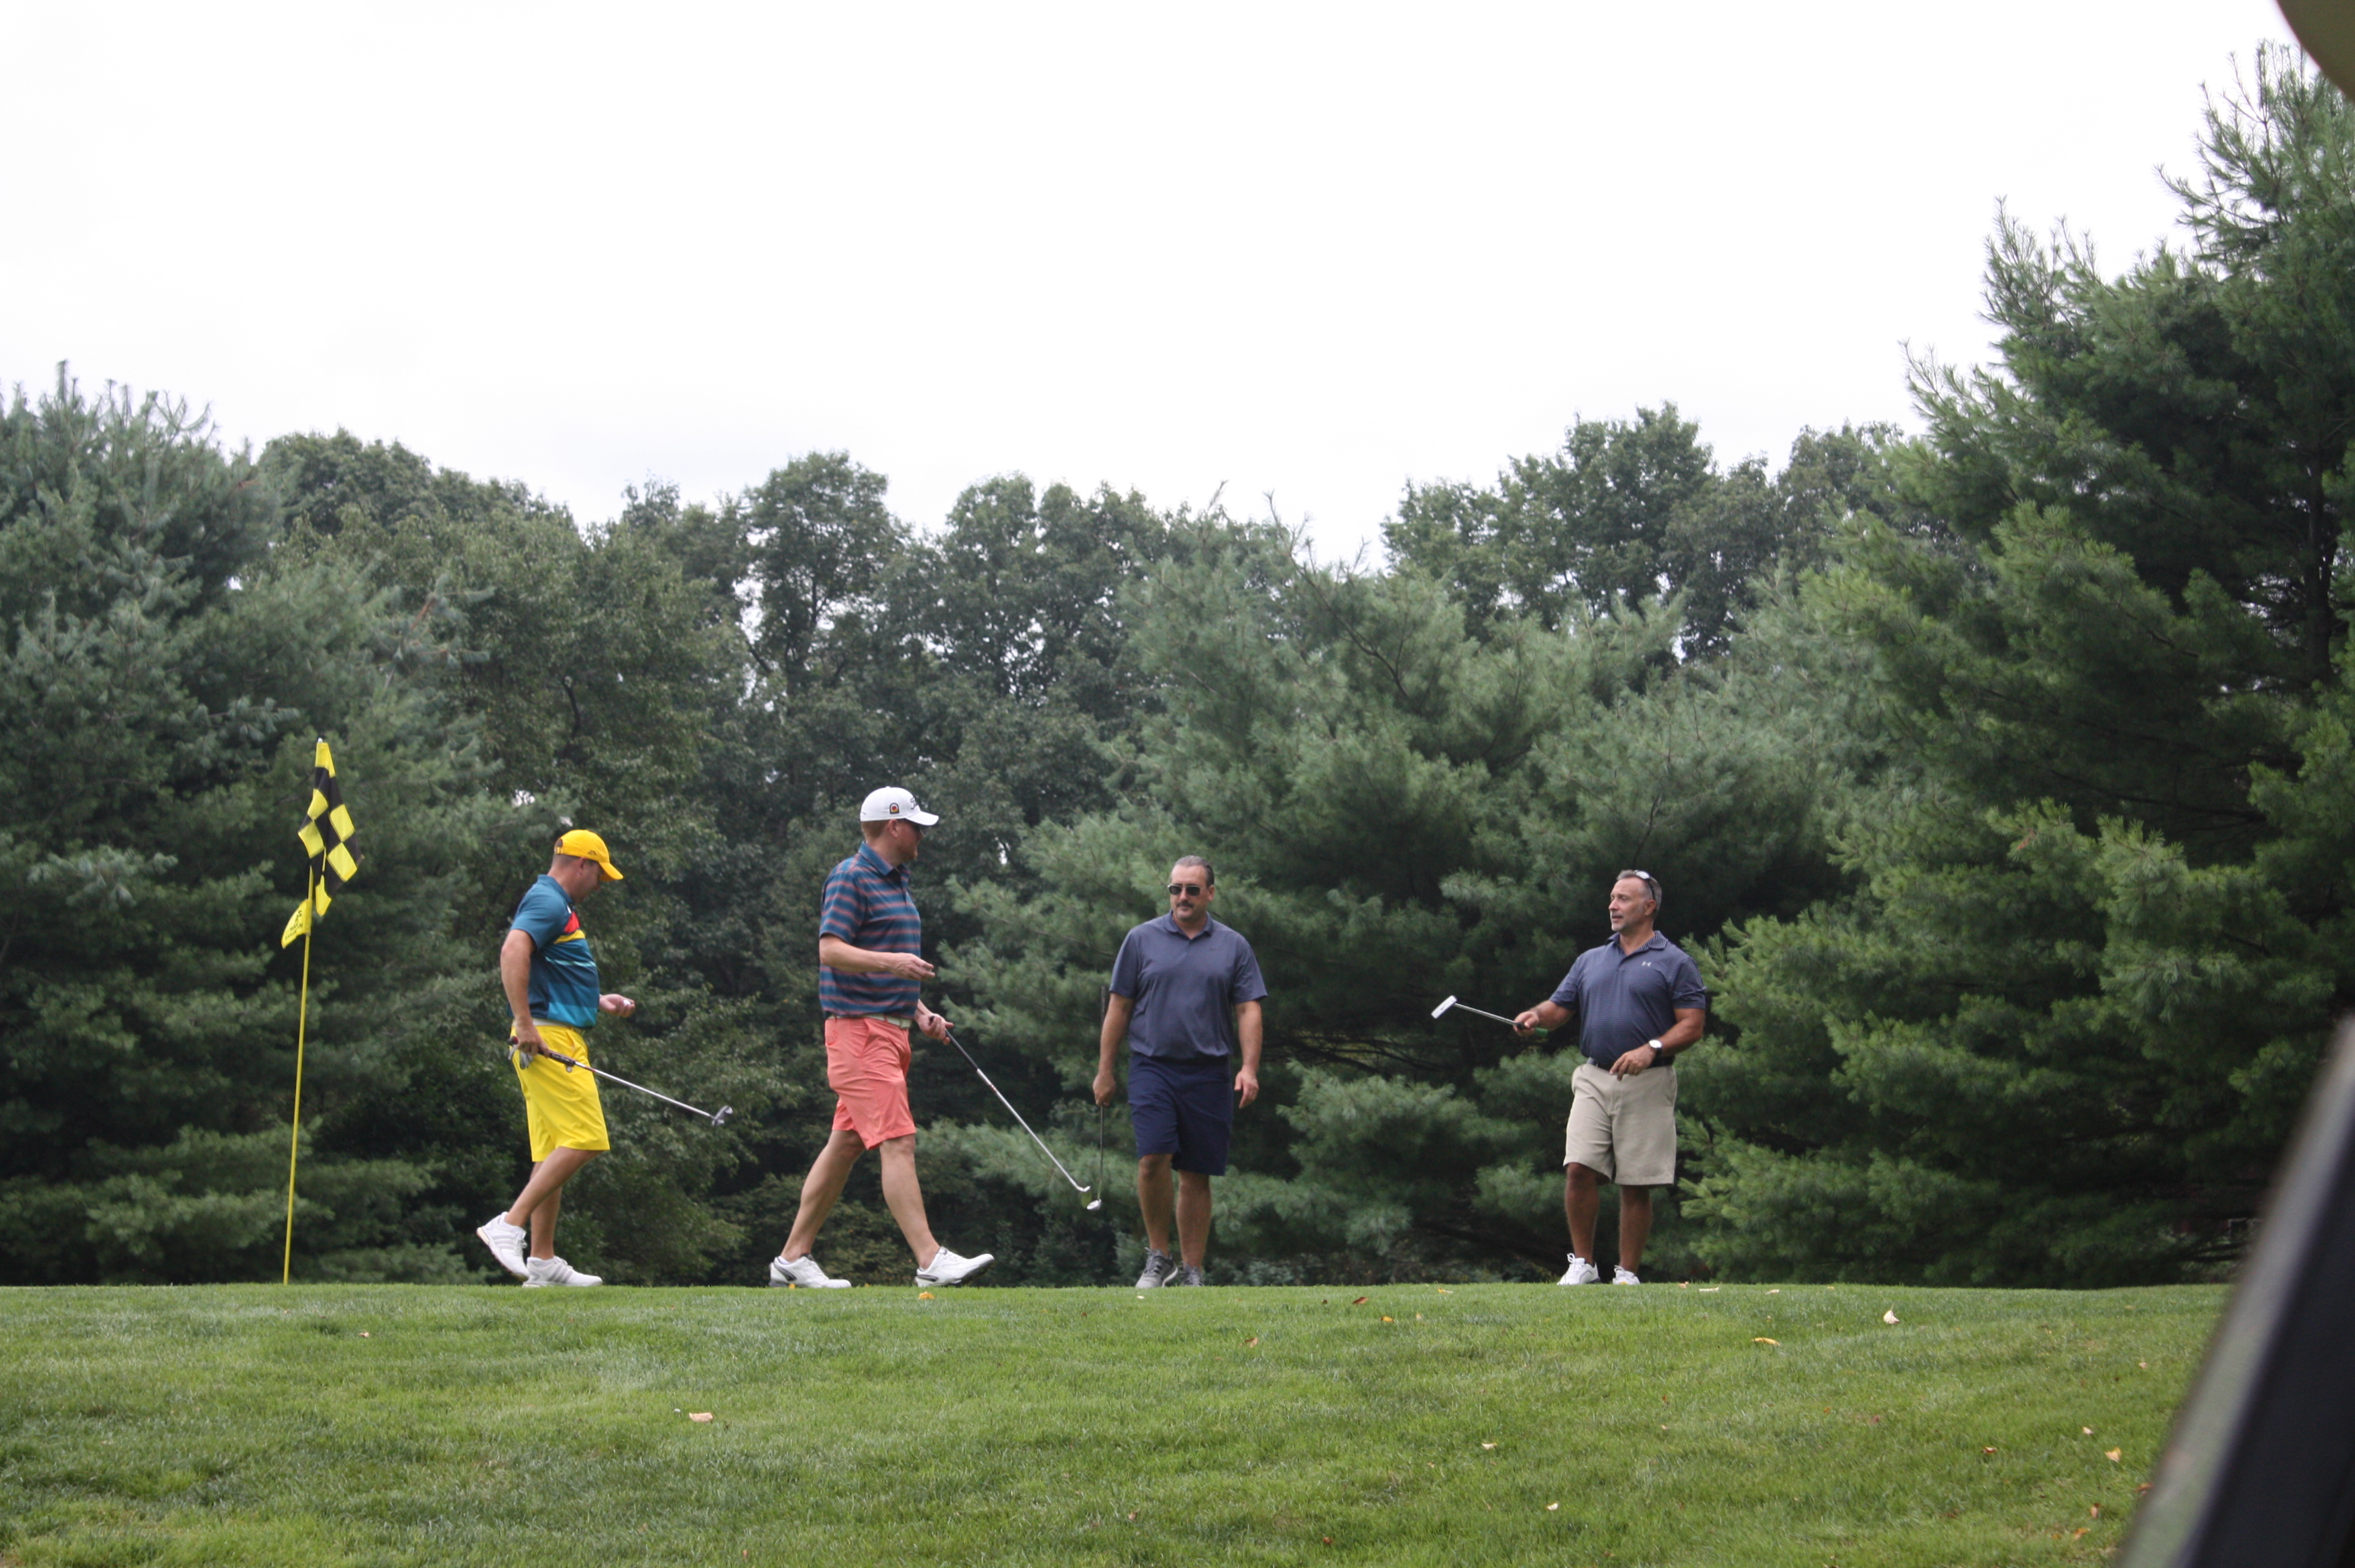 2019 Mars Planet Foundation Golf Outing gallery image #7